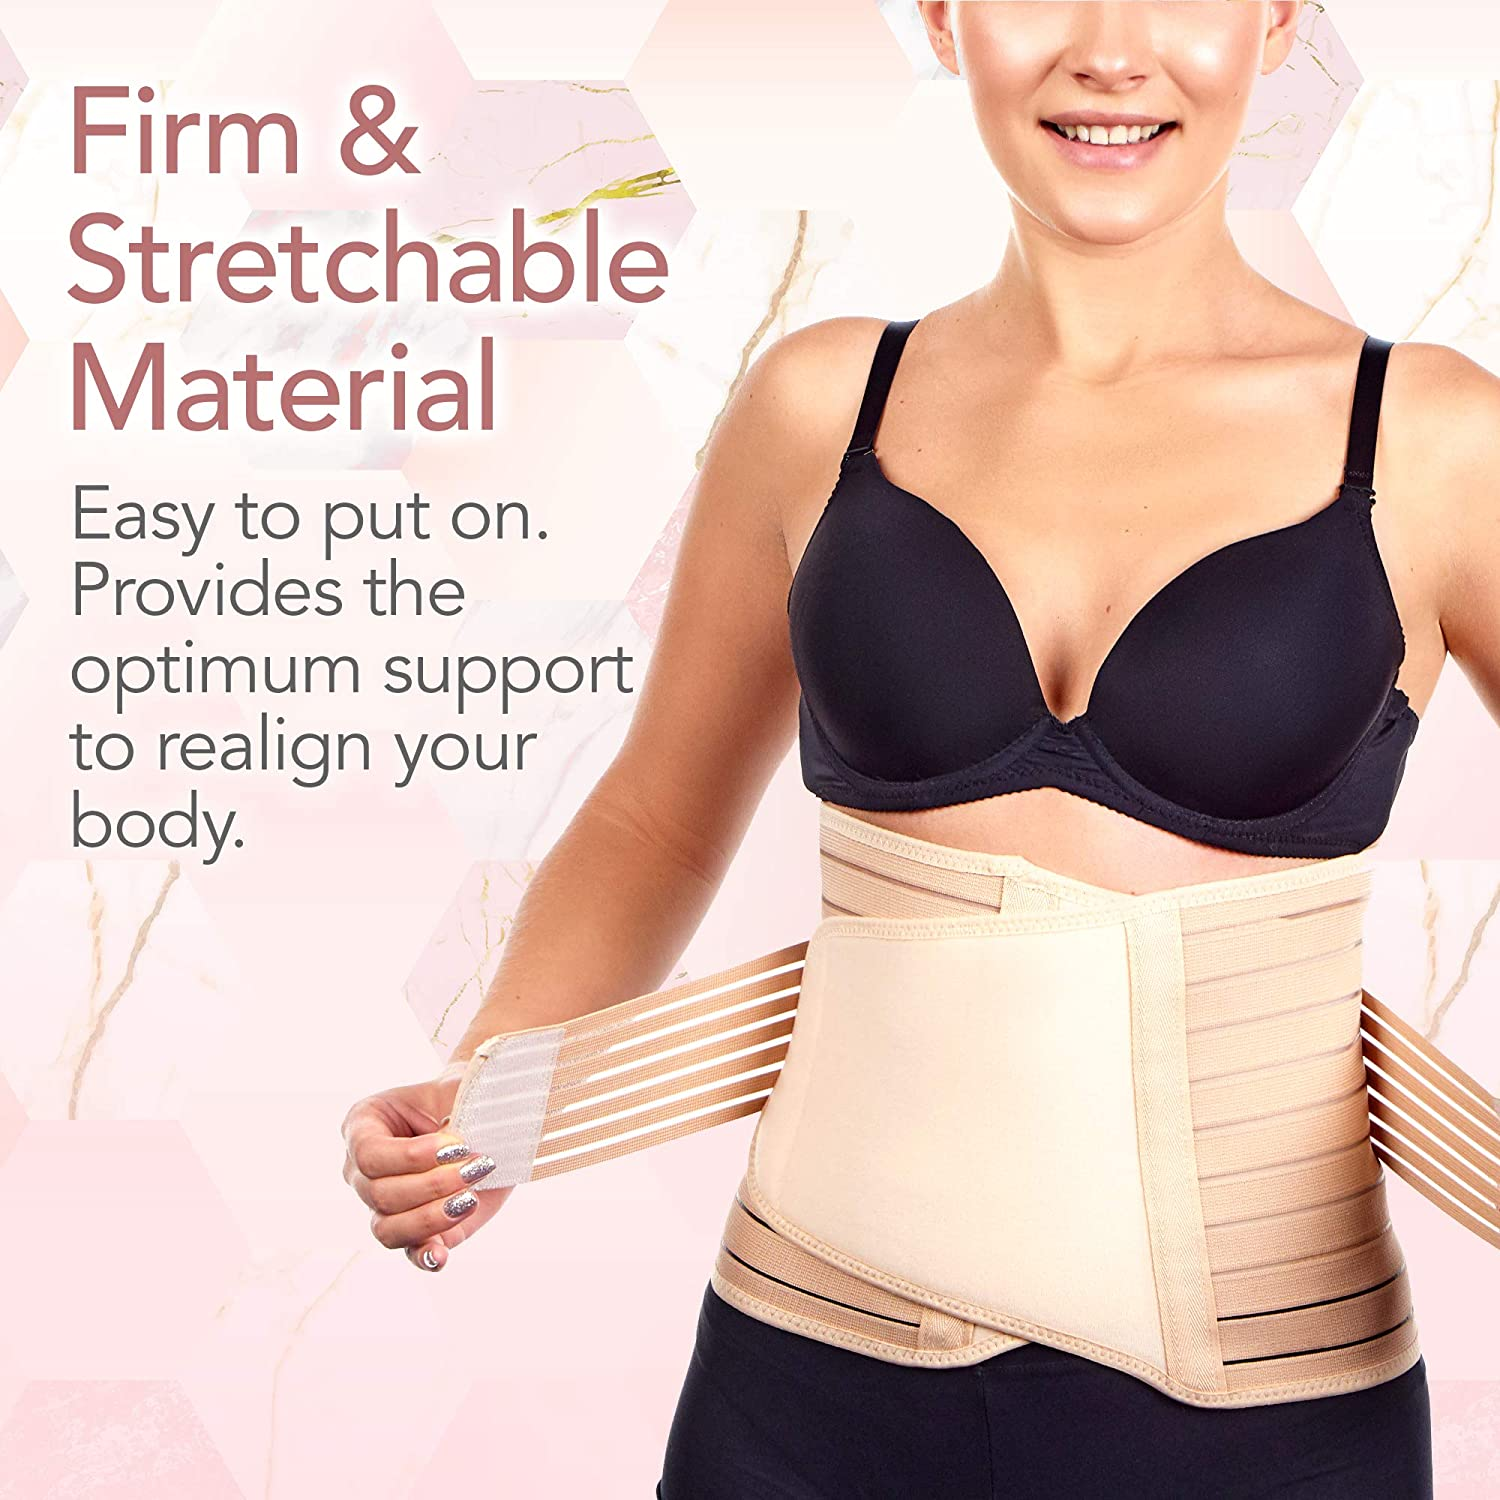 Postpartum Postnatal After Pregnancy Recovery Support Shapewear Tummy Control UK